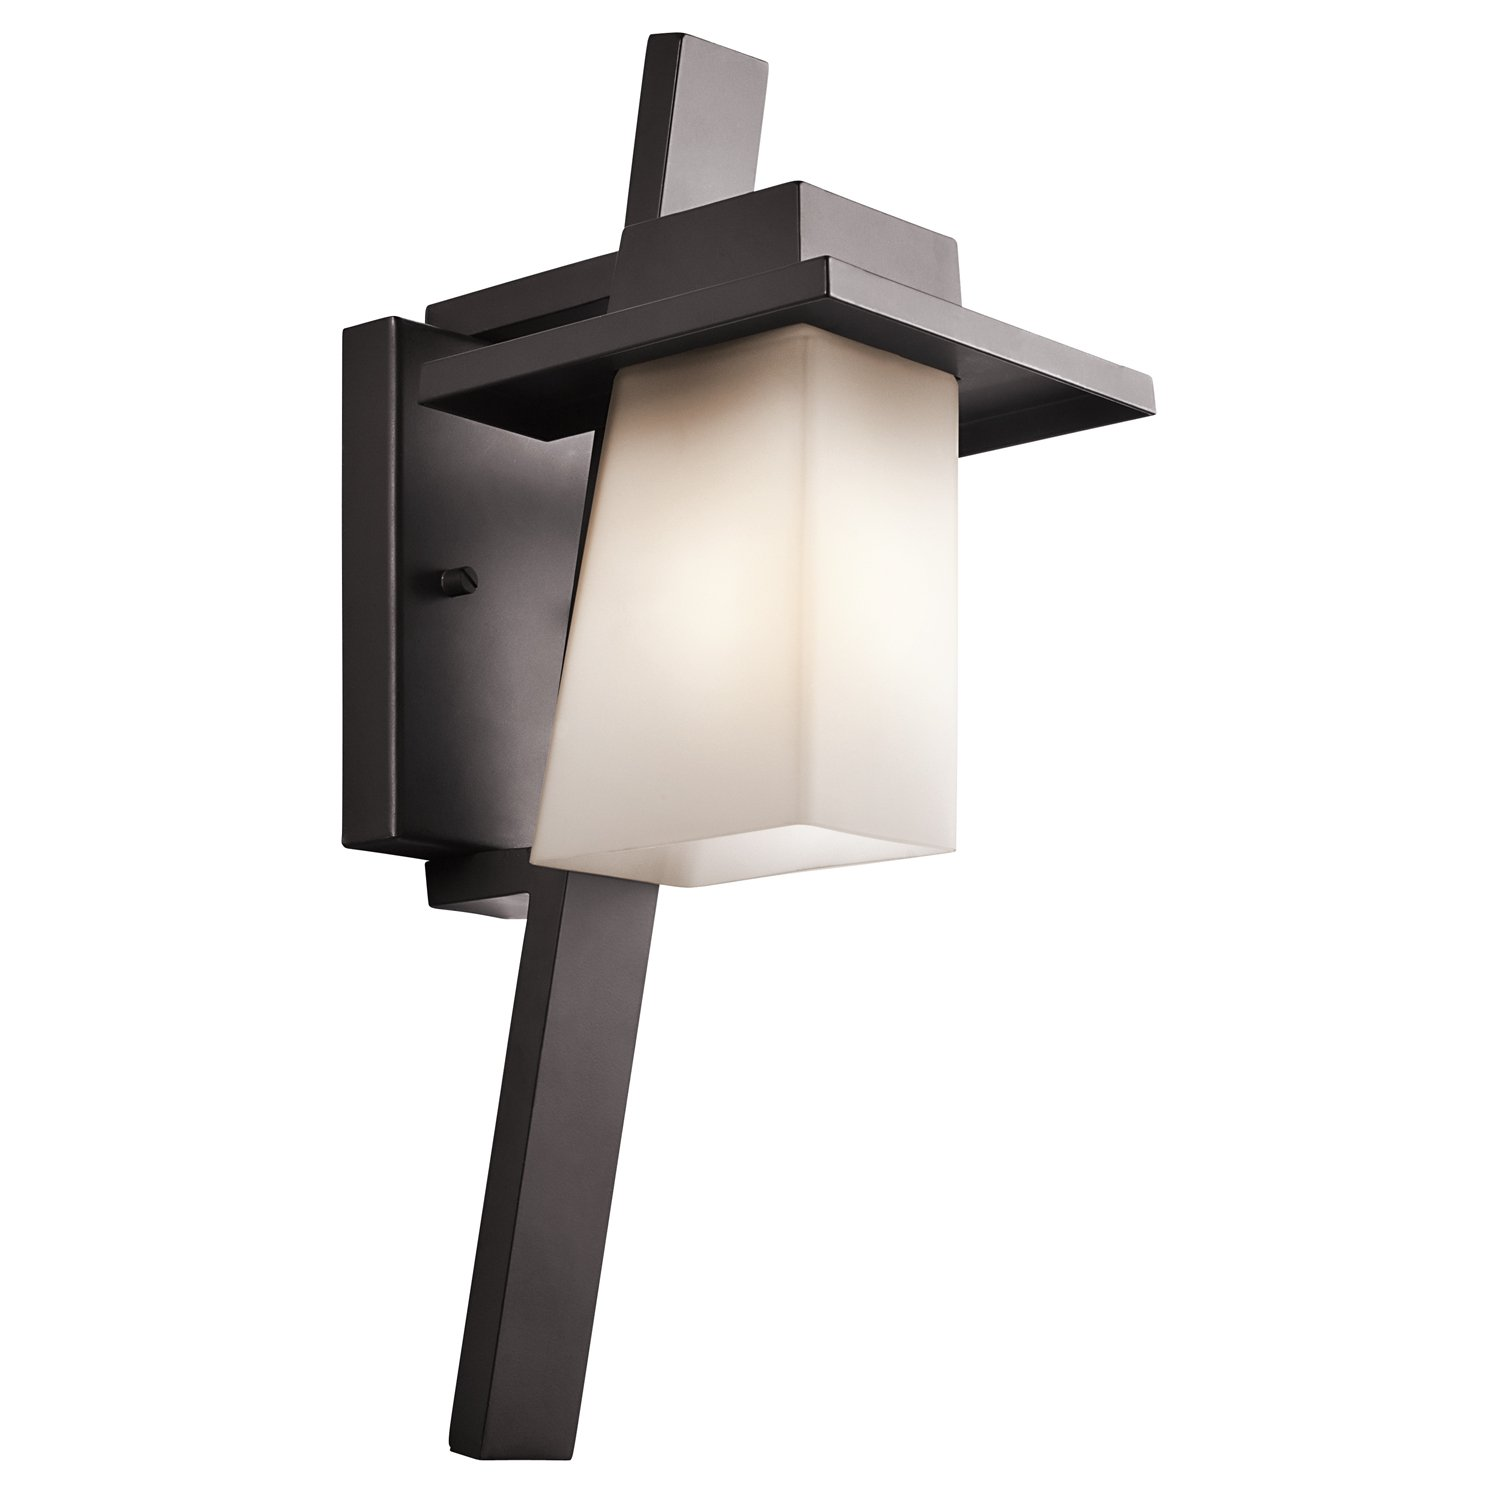 Kichler 49257az one light outdoor wall mount wall porch lights kichler 49257az one light outdoor wall mount wall porch lights amazon amipublicfo Choice Image